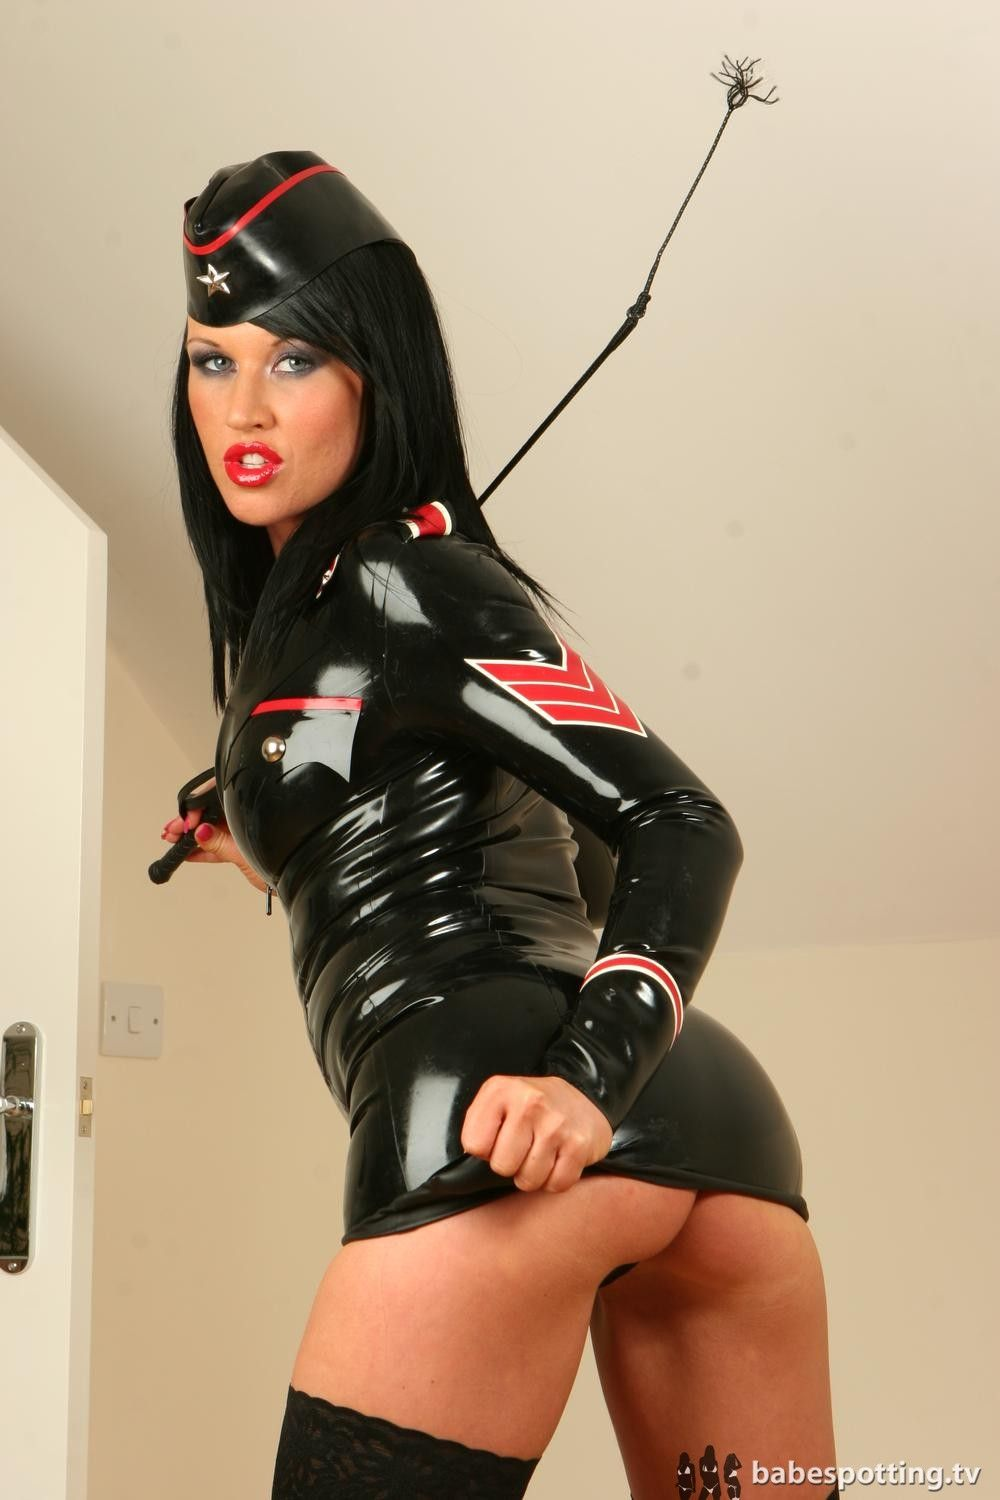 lolly badcock | kataxenna | pinterest | latex, dominatrix and sexy latex